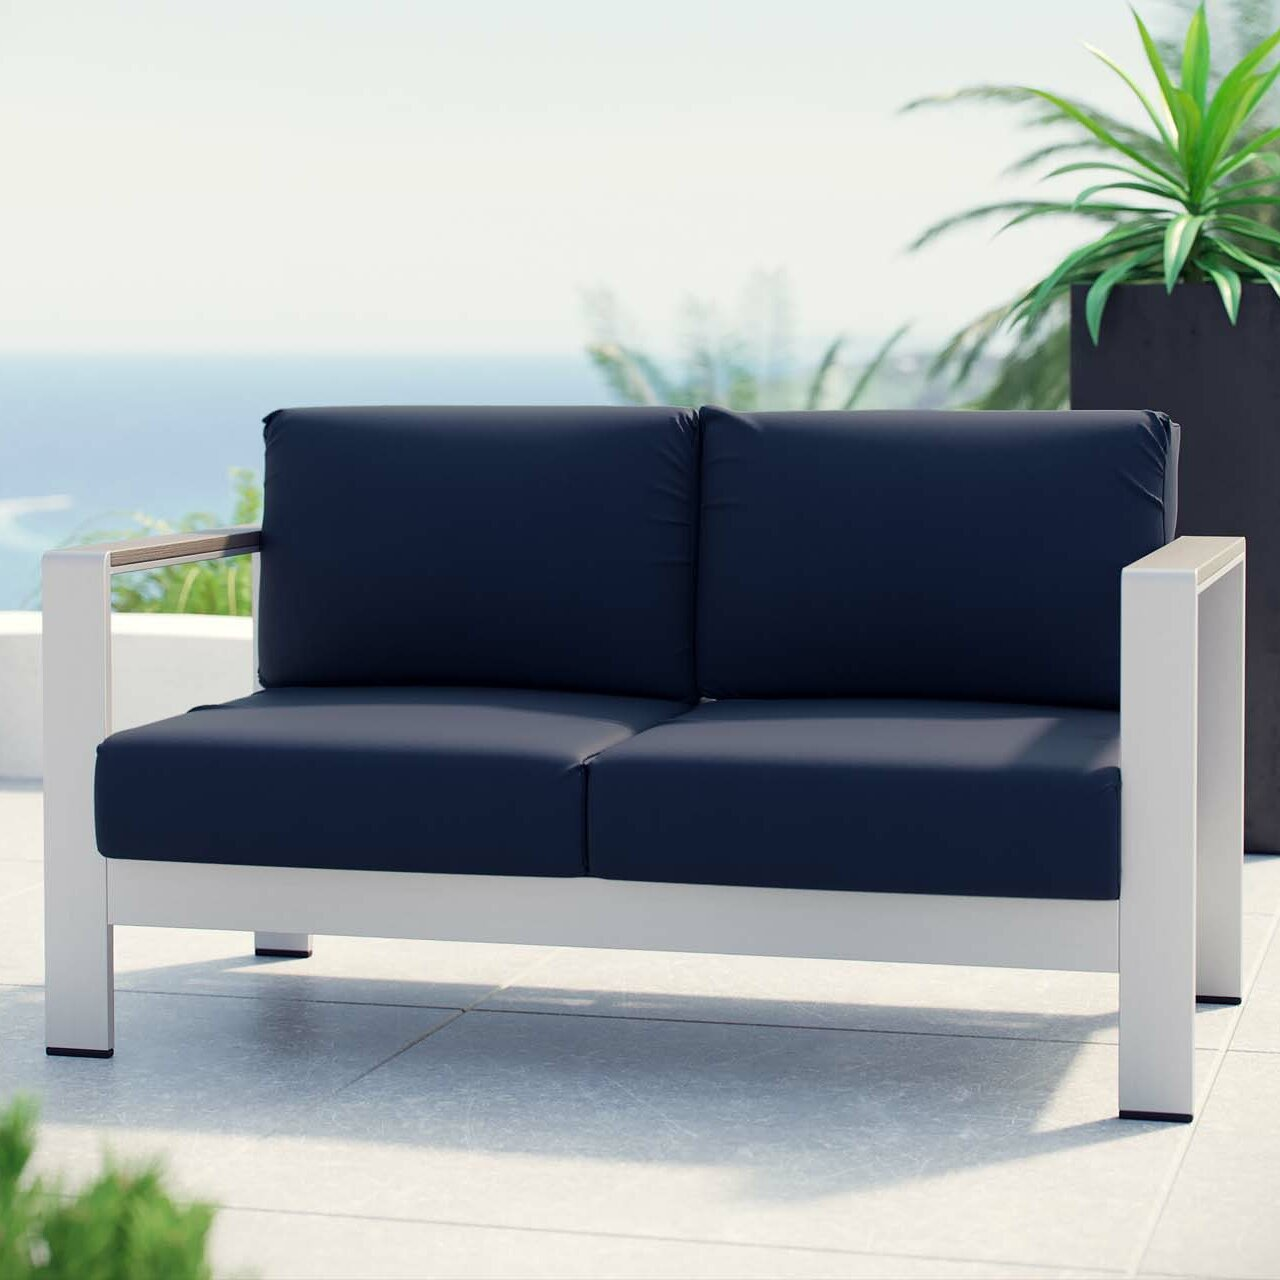 Exceptionnel Orren Ellis Coline Outdoor Patio Aluminum Loveseat With Cushions | Wayfair